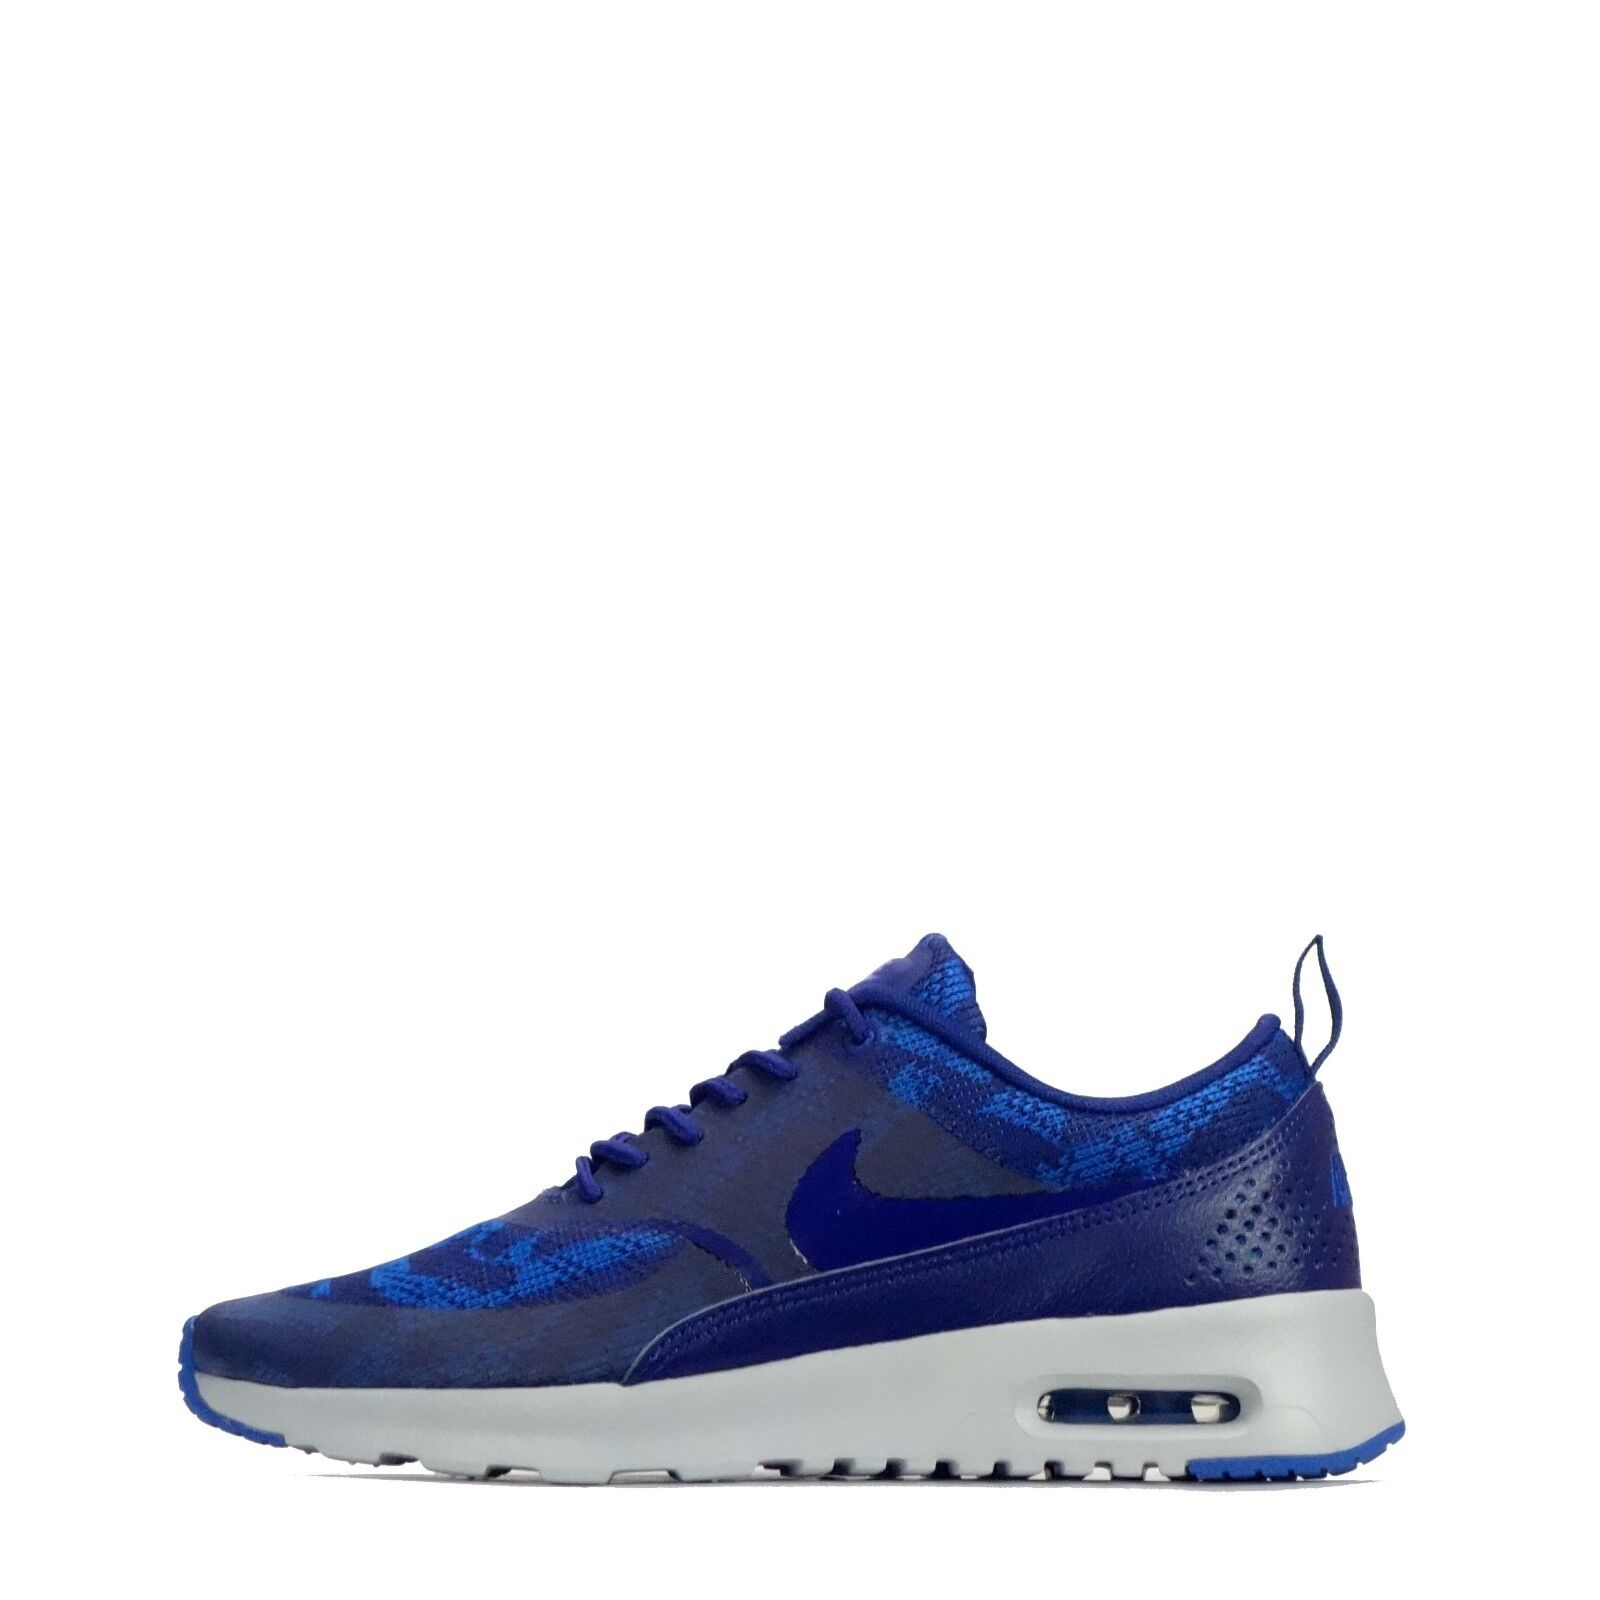 Zapatos promocionales para hombres y mujeres Nike Air Max Thea Jacquard Women's Trainers Shoes Royal Blue